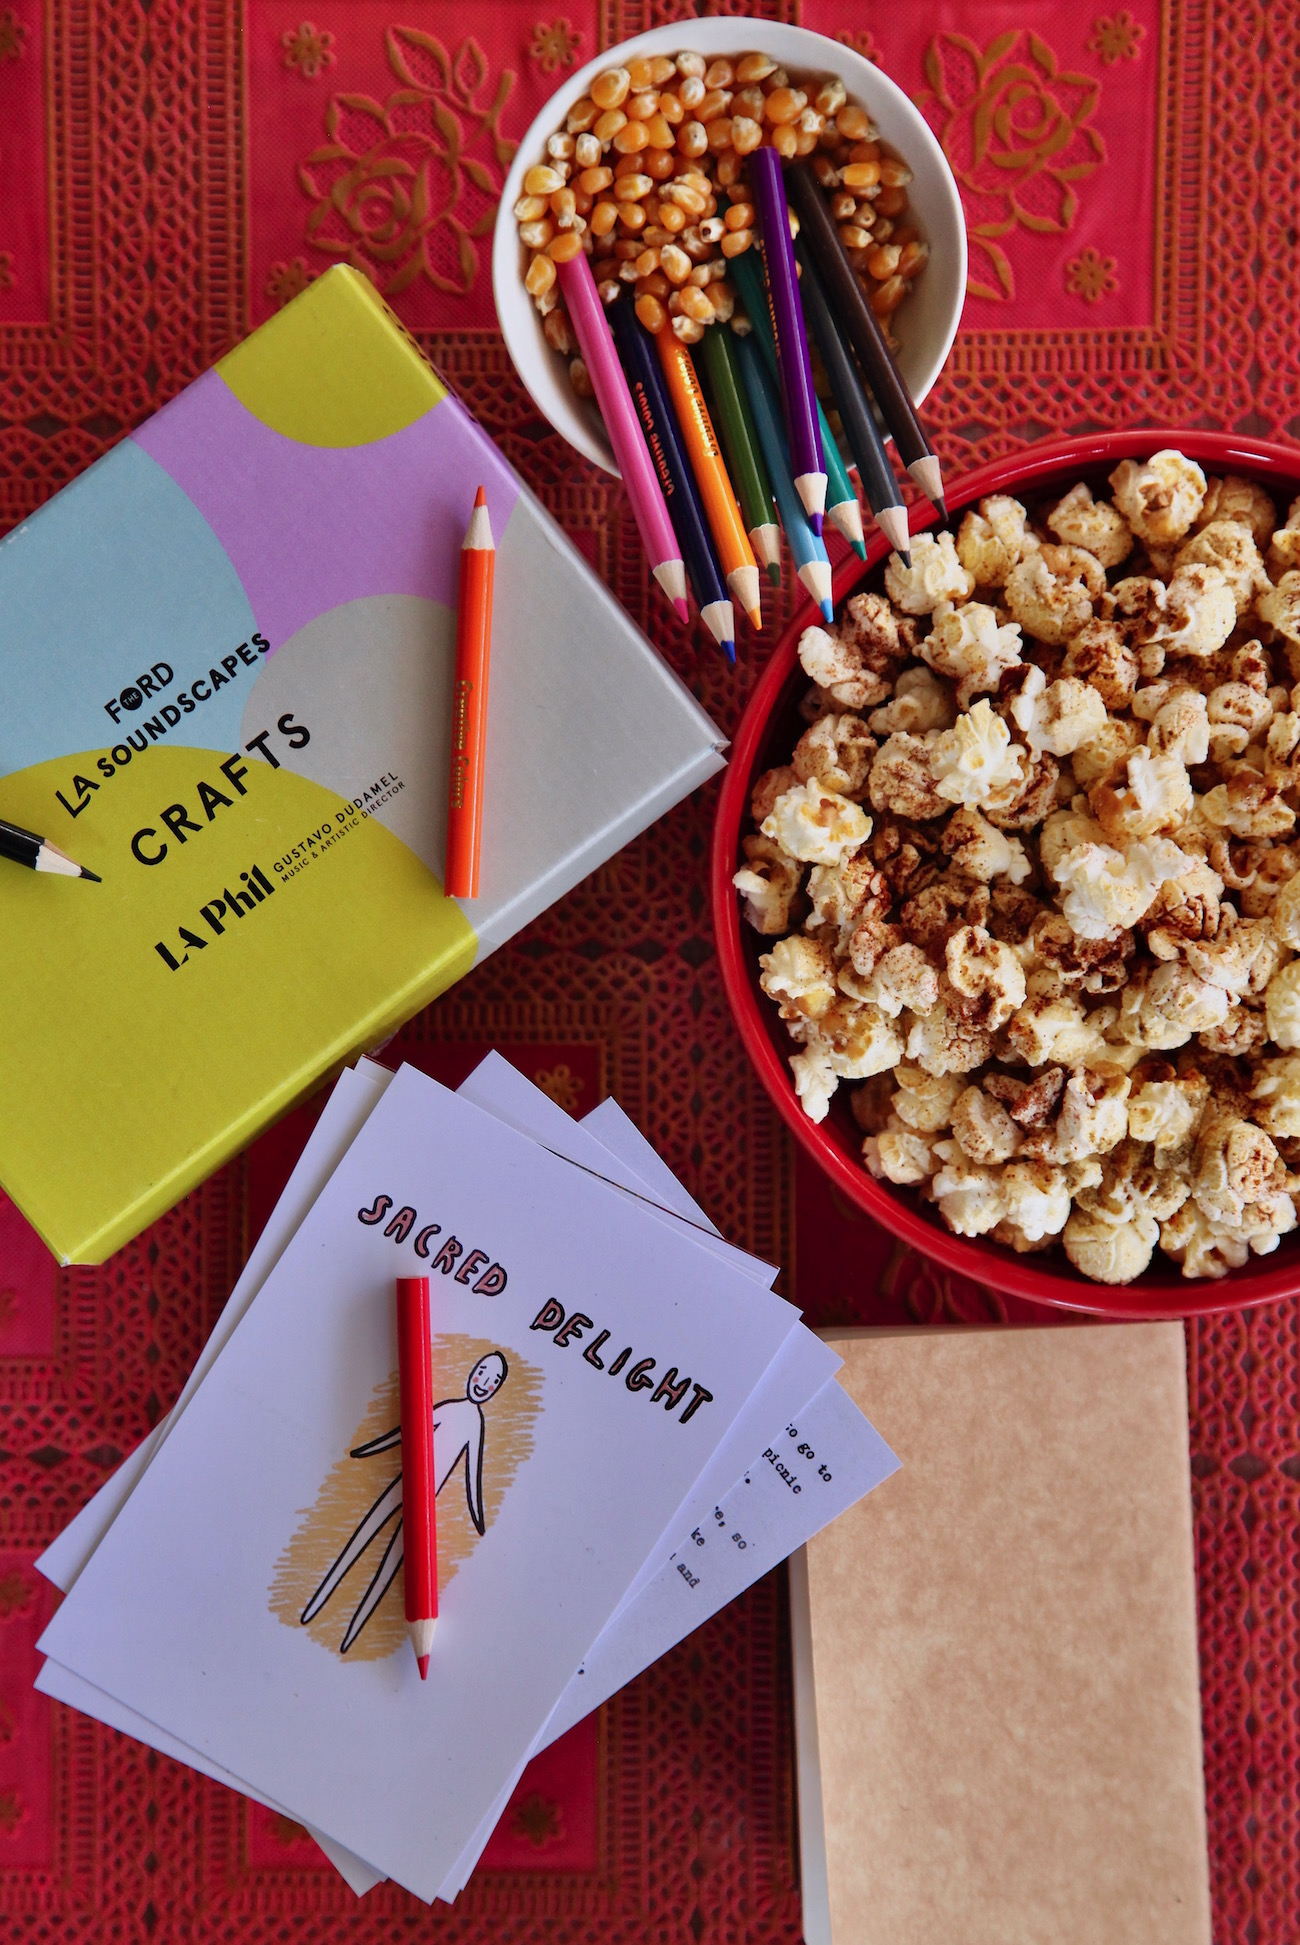 LA Soundscapes And Bollywood Popcorn